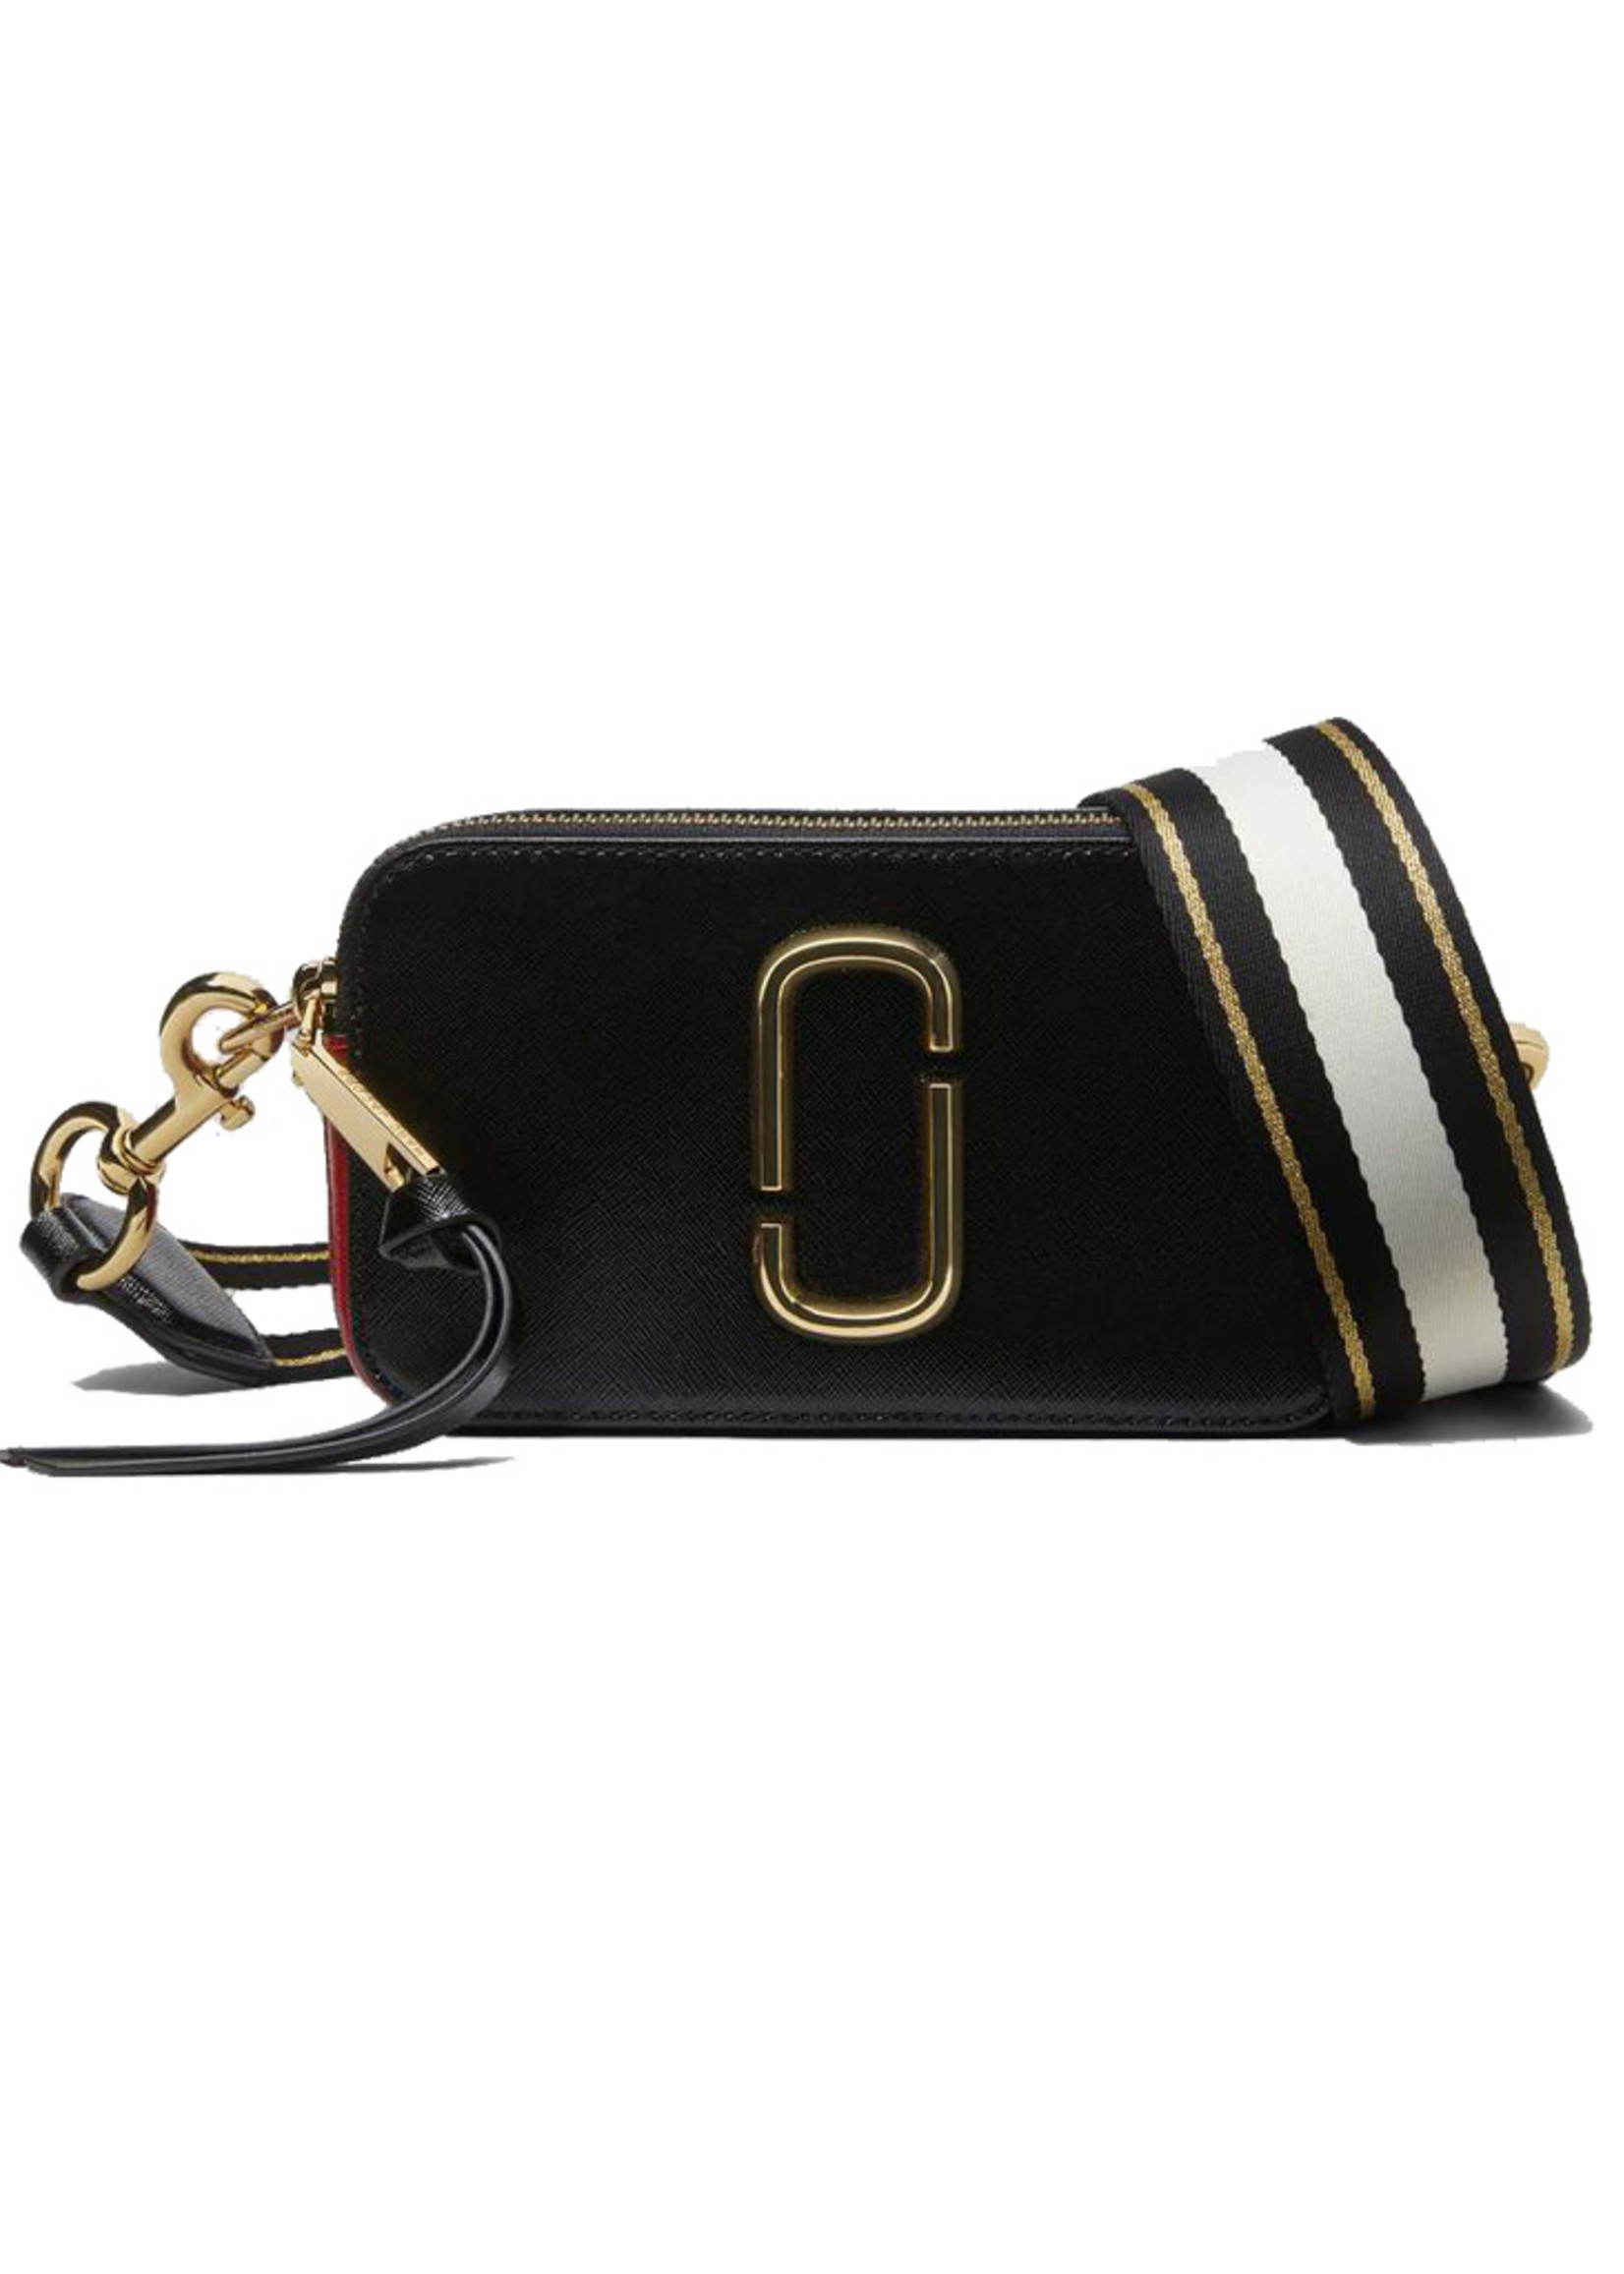 MARC JACOBS / Snapshot - LABR52214